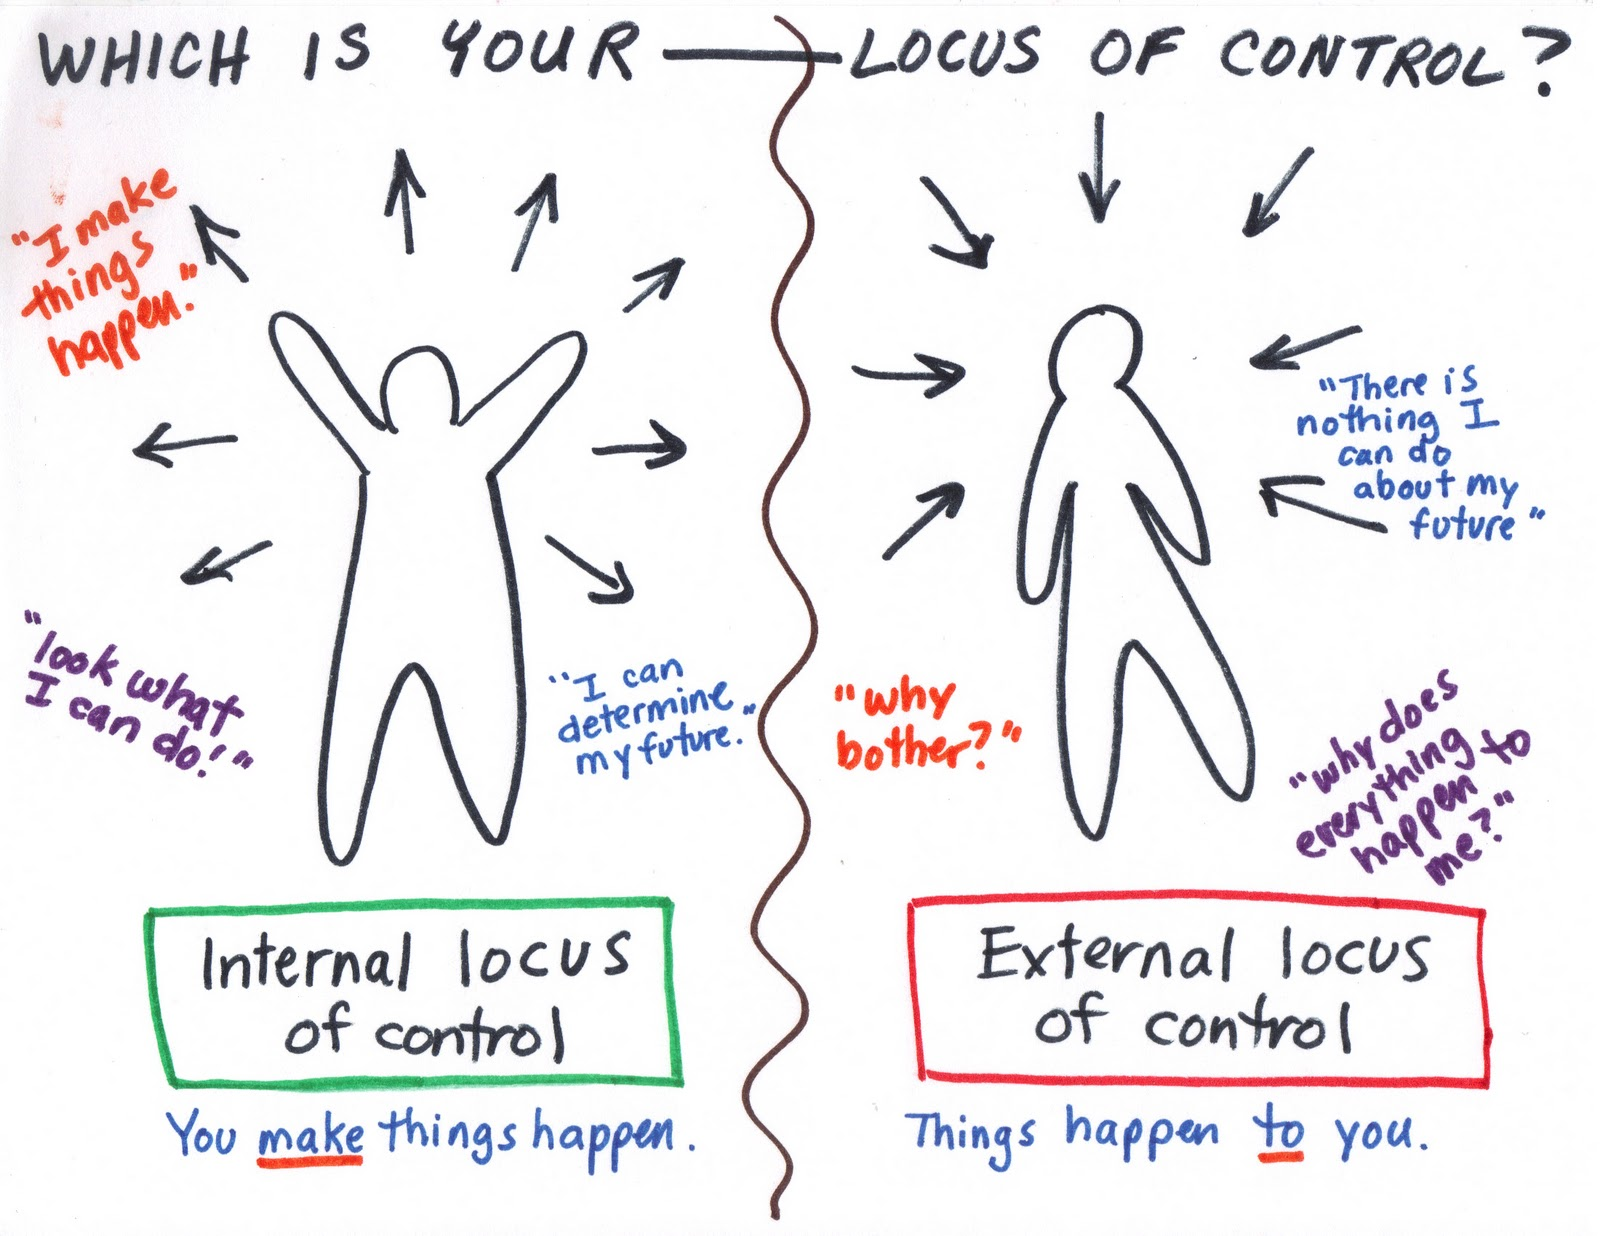 ideas: locus of control?